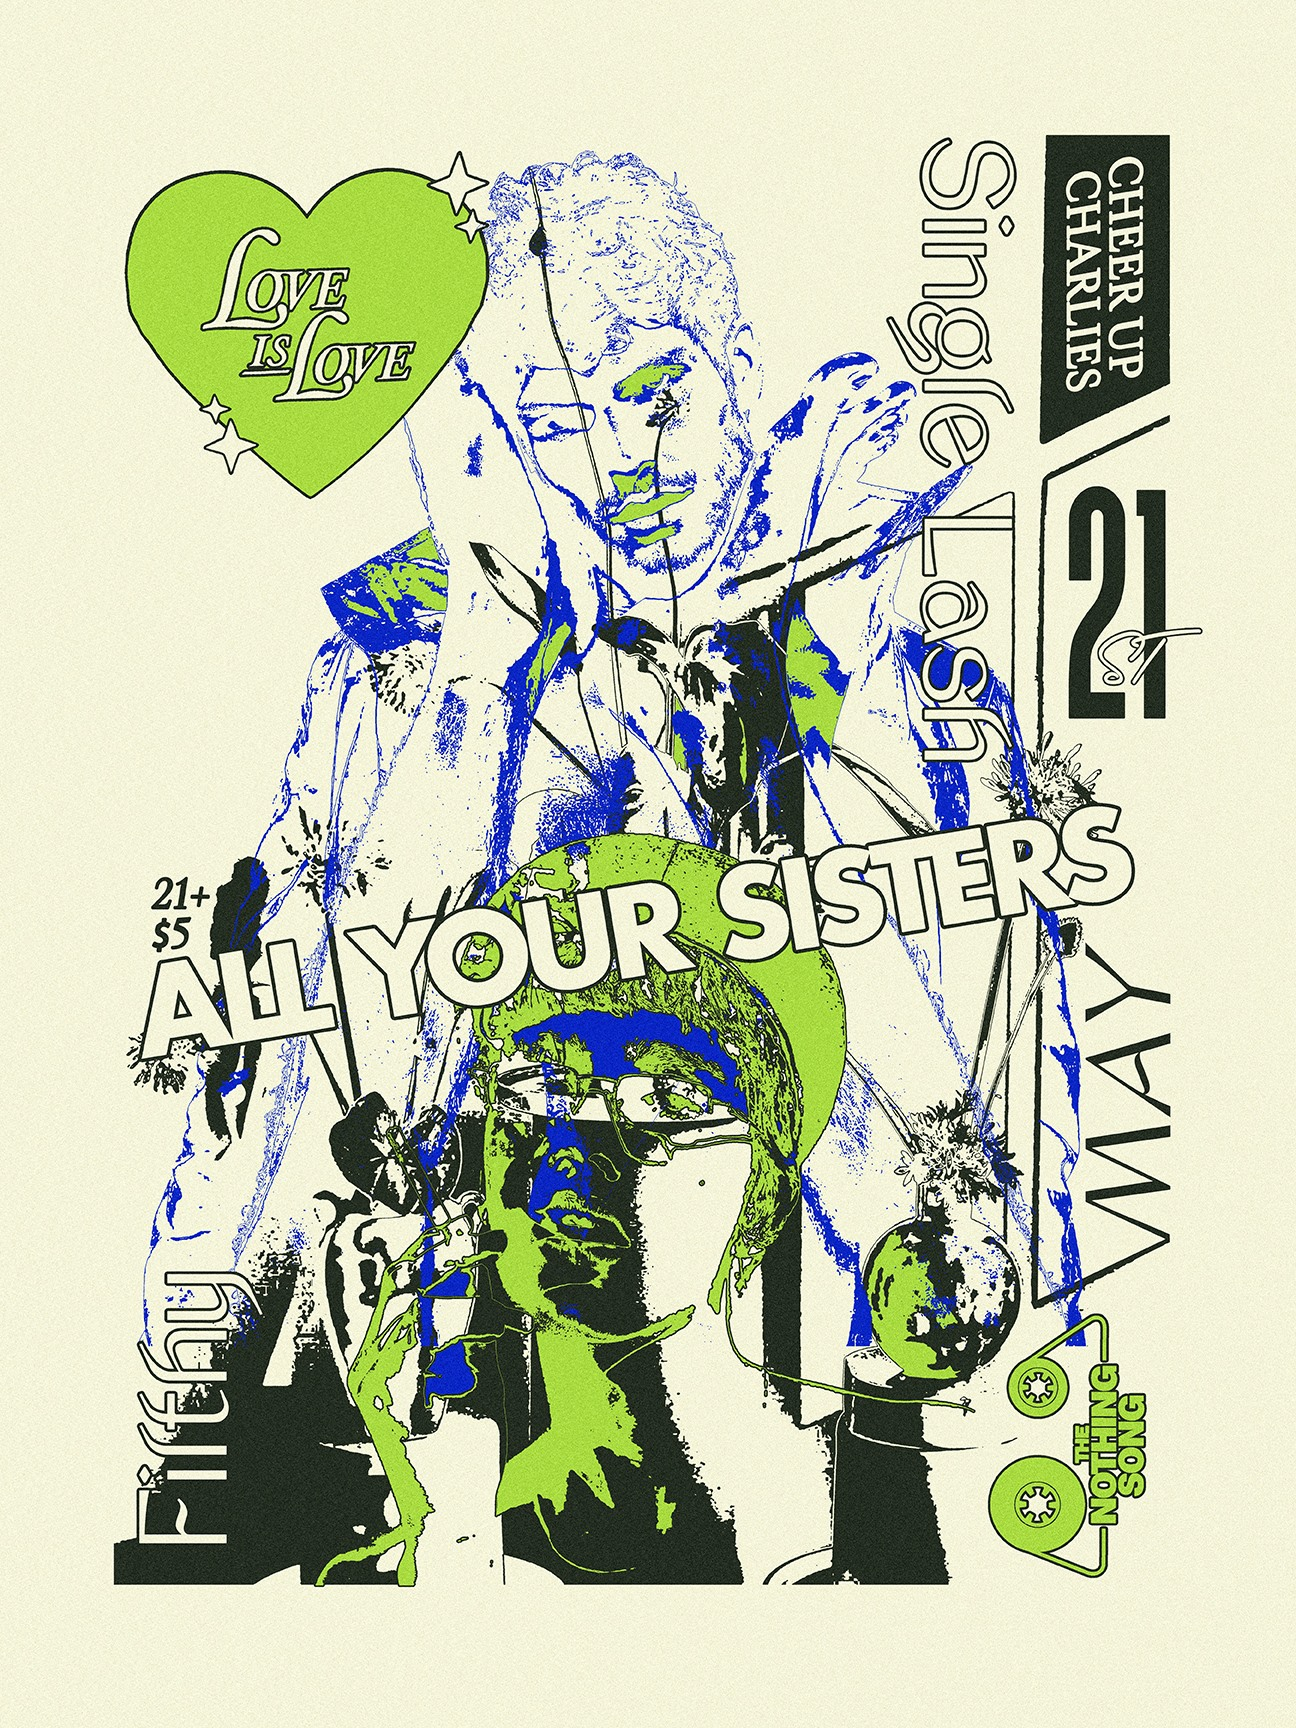 Single Lash / All Your Sisters (San Francisco) / Filthy